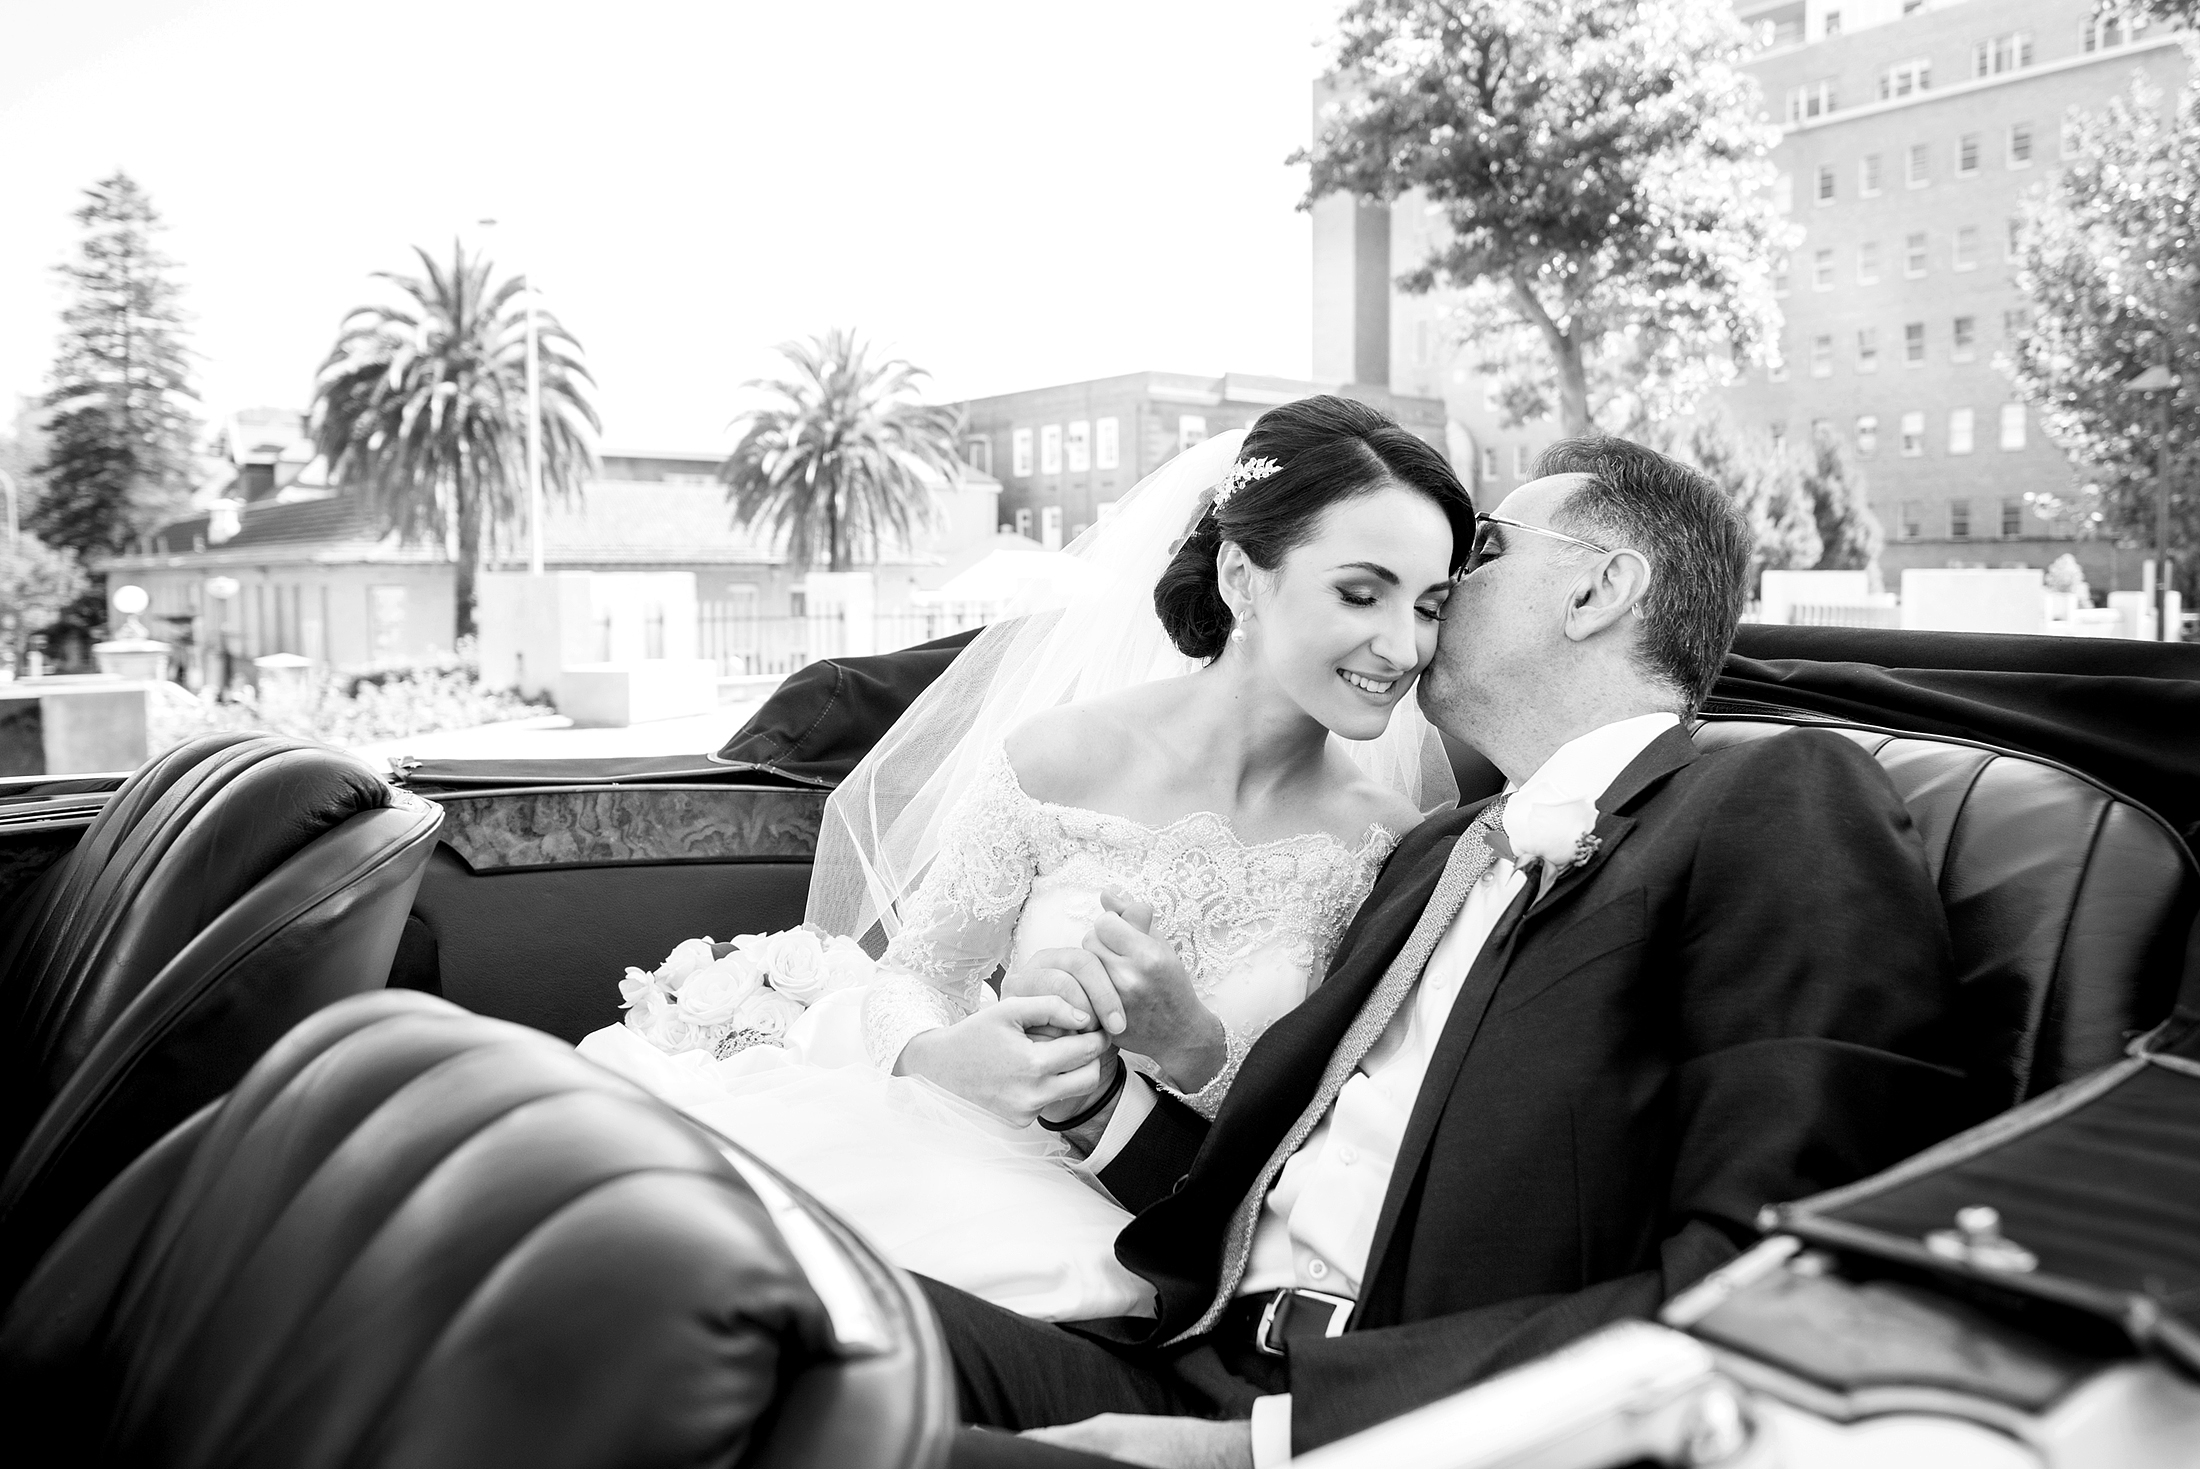 natural wedding photography perth.jpg